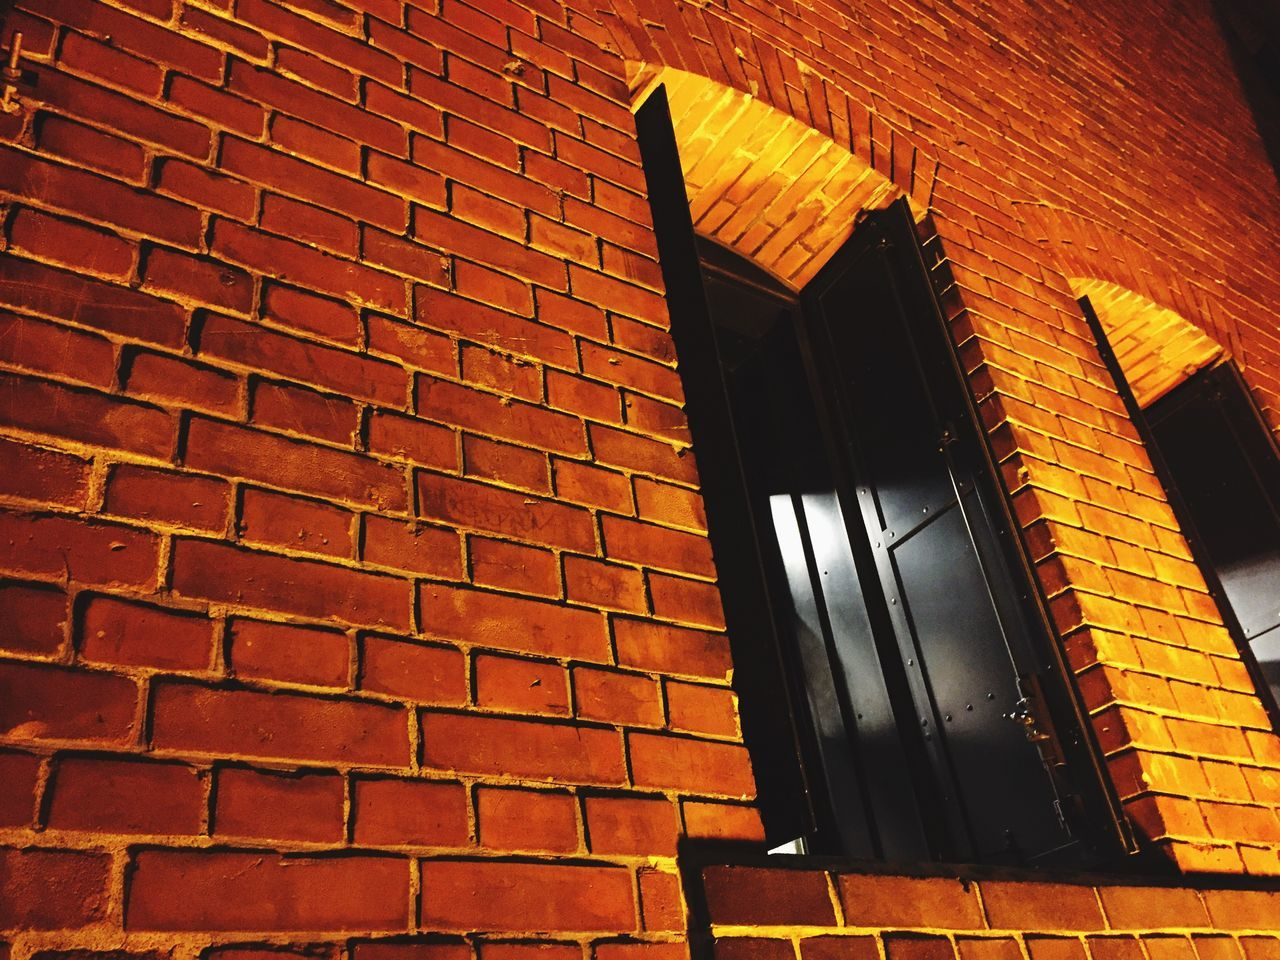 Dramatic Angles Window Window Frame Window Sill Red Brick Wall Redbrick Redbricks Redbrickwall